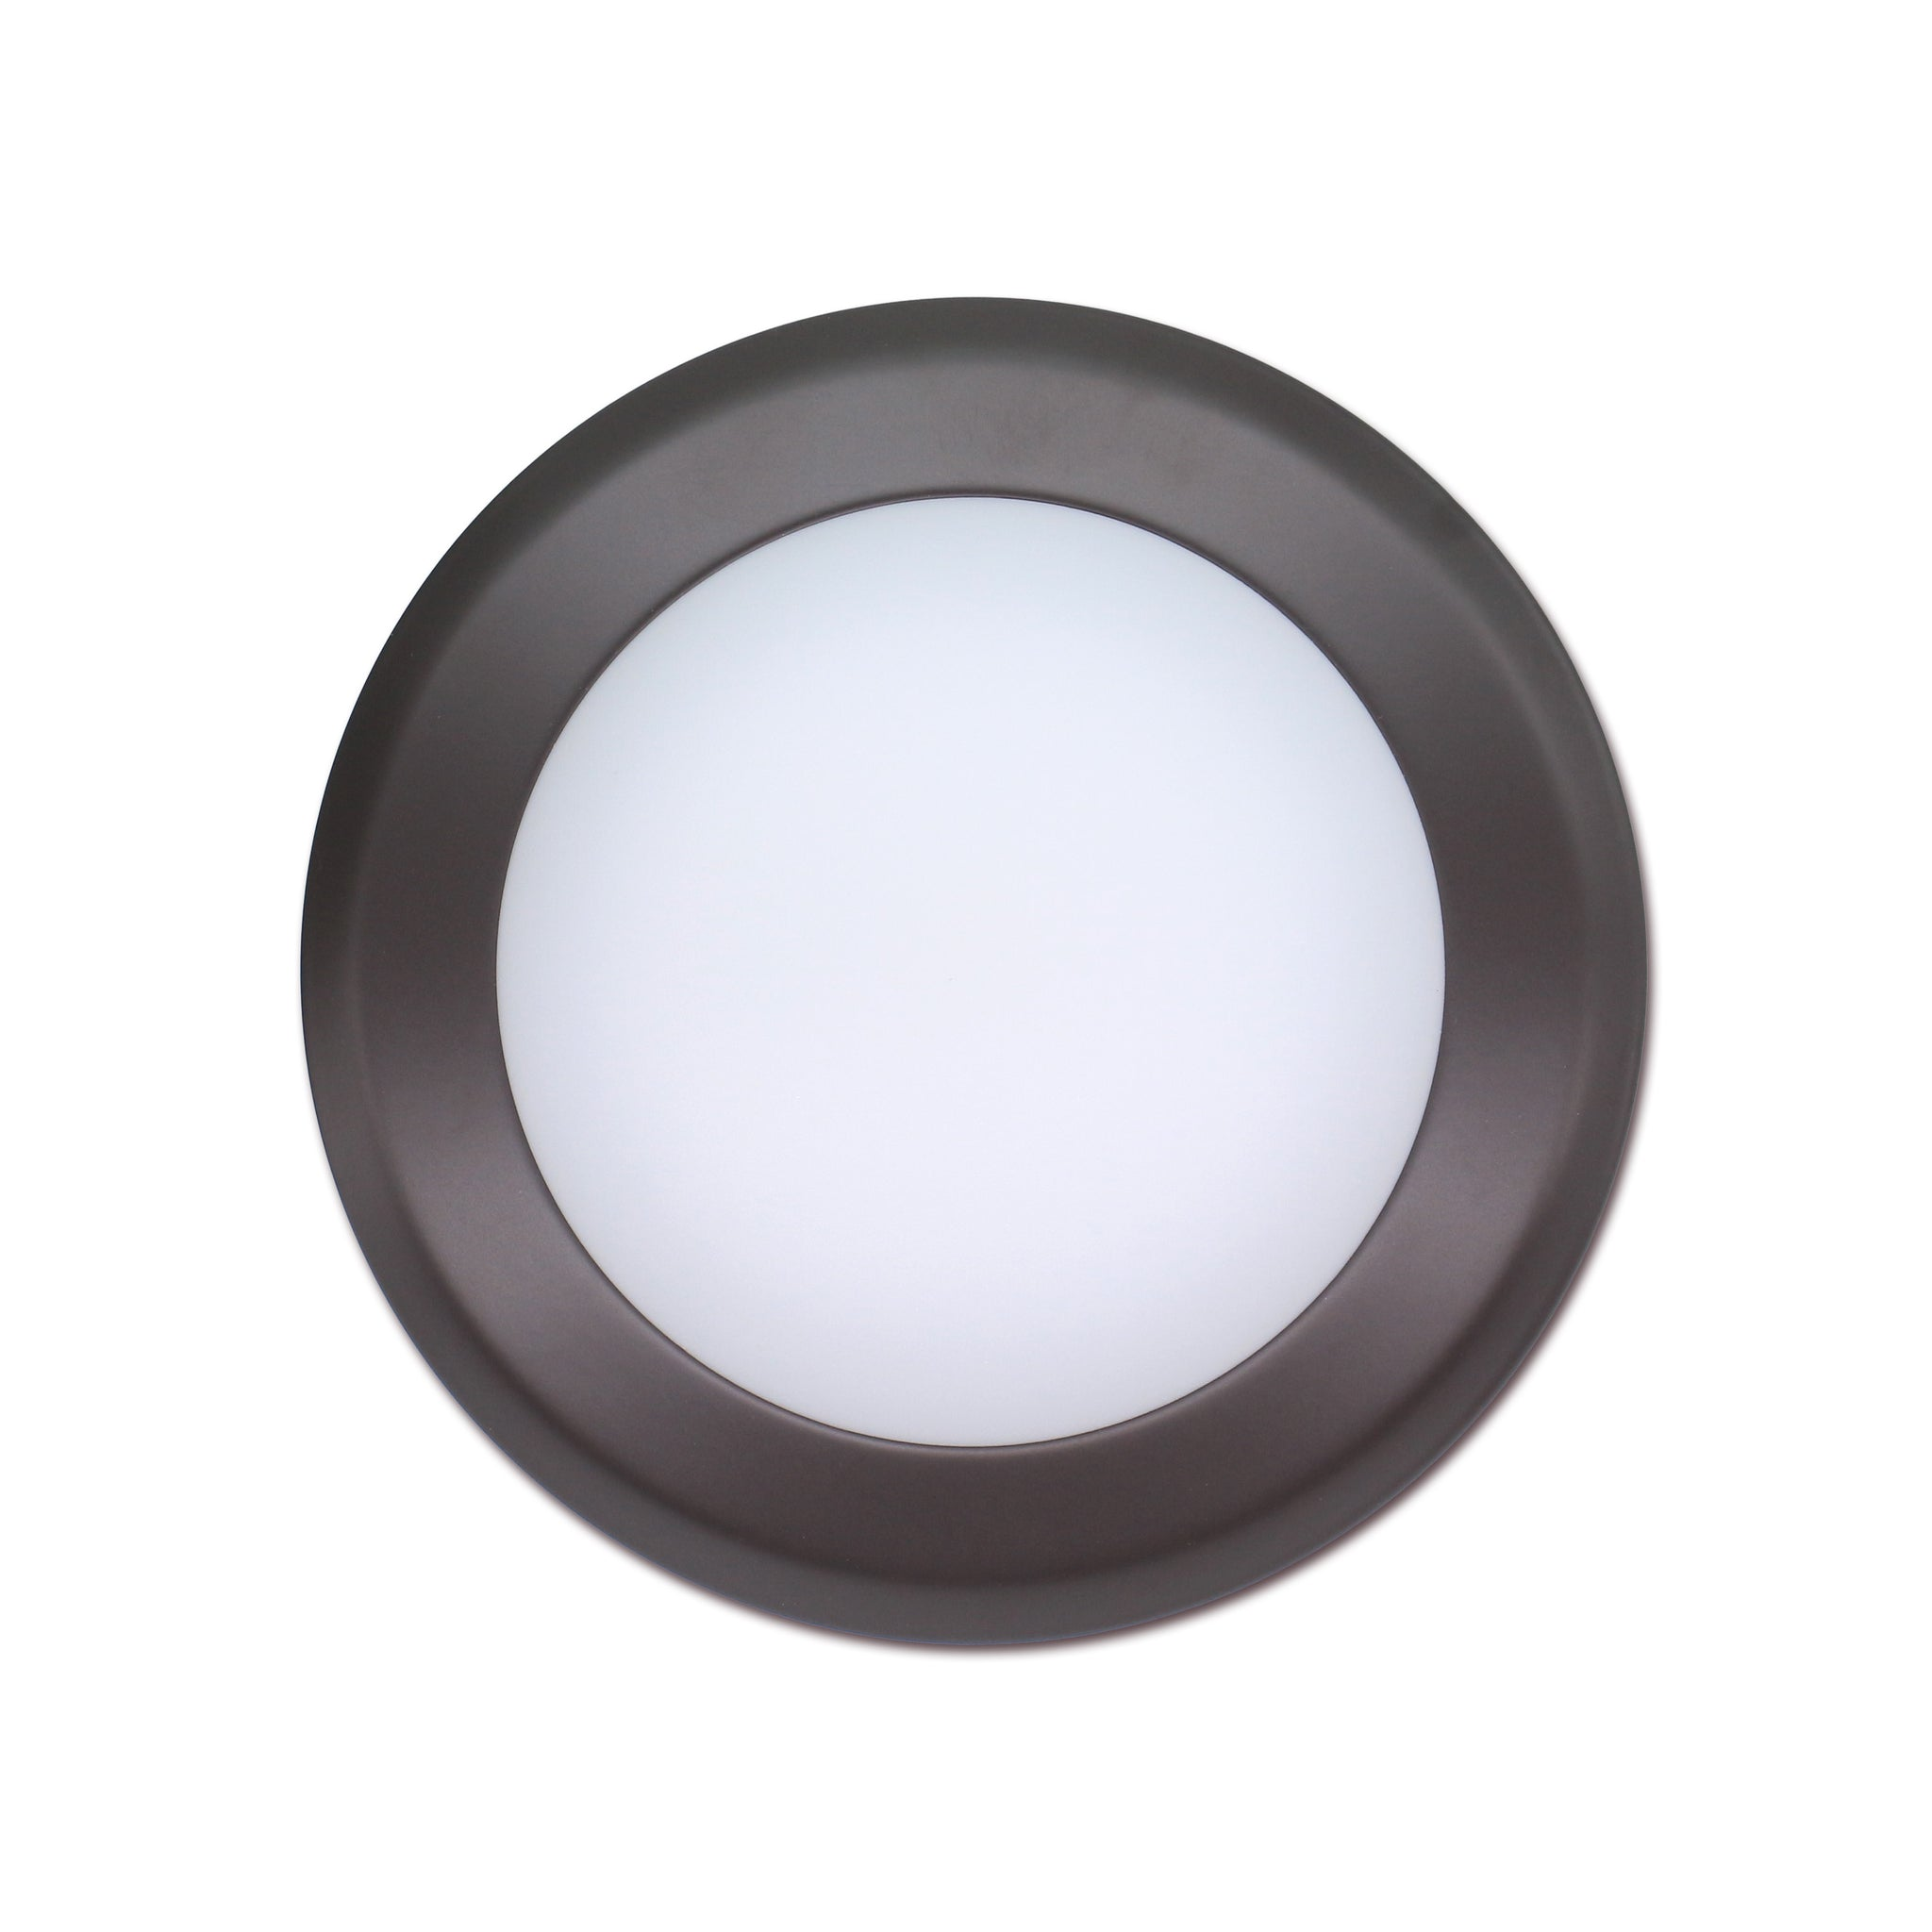 QPlus 7.5 Inch Round LED Dimmable Ceiling Disk Light 15W/1050 Lumens 5000K in Bronze, White & Silver Metal Trims